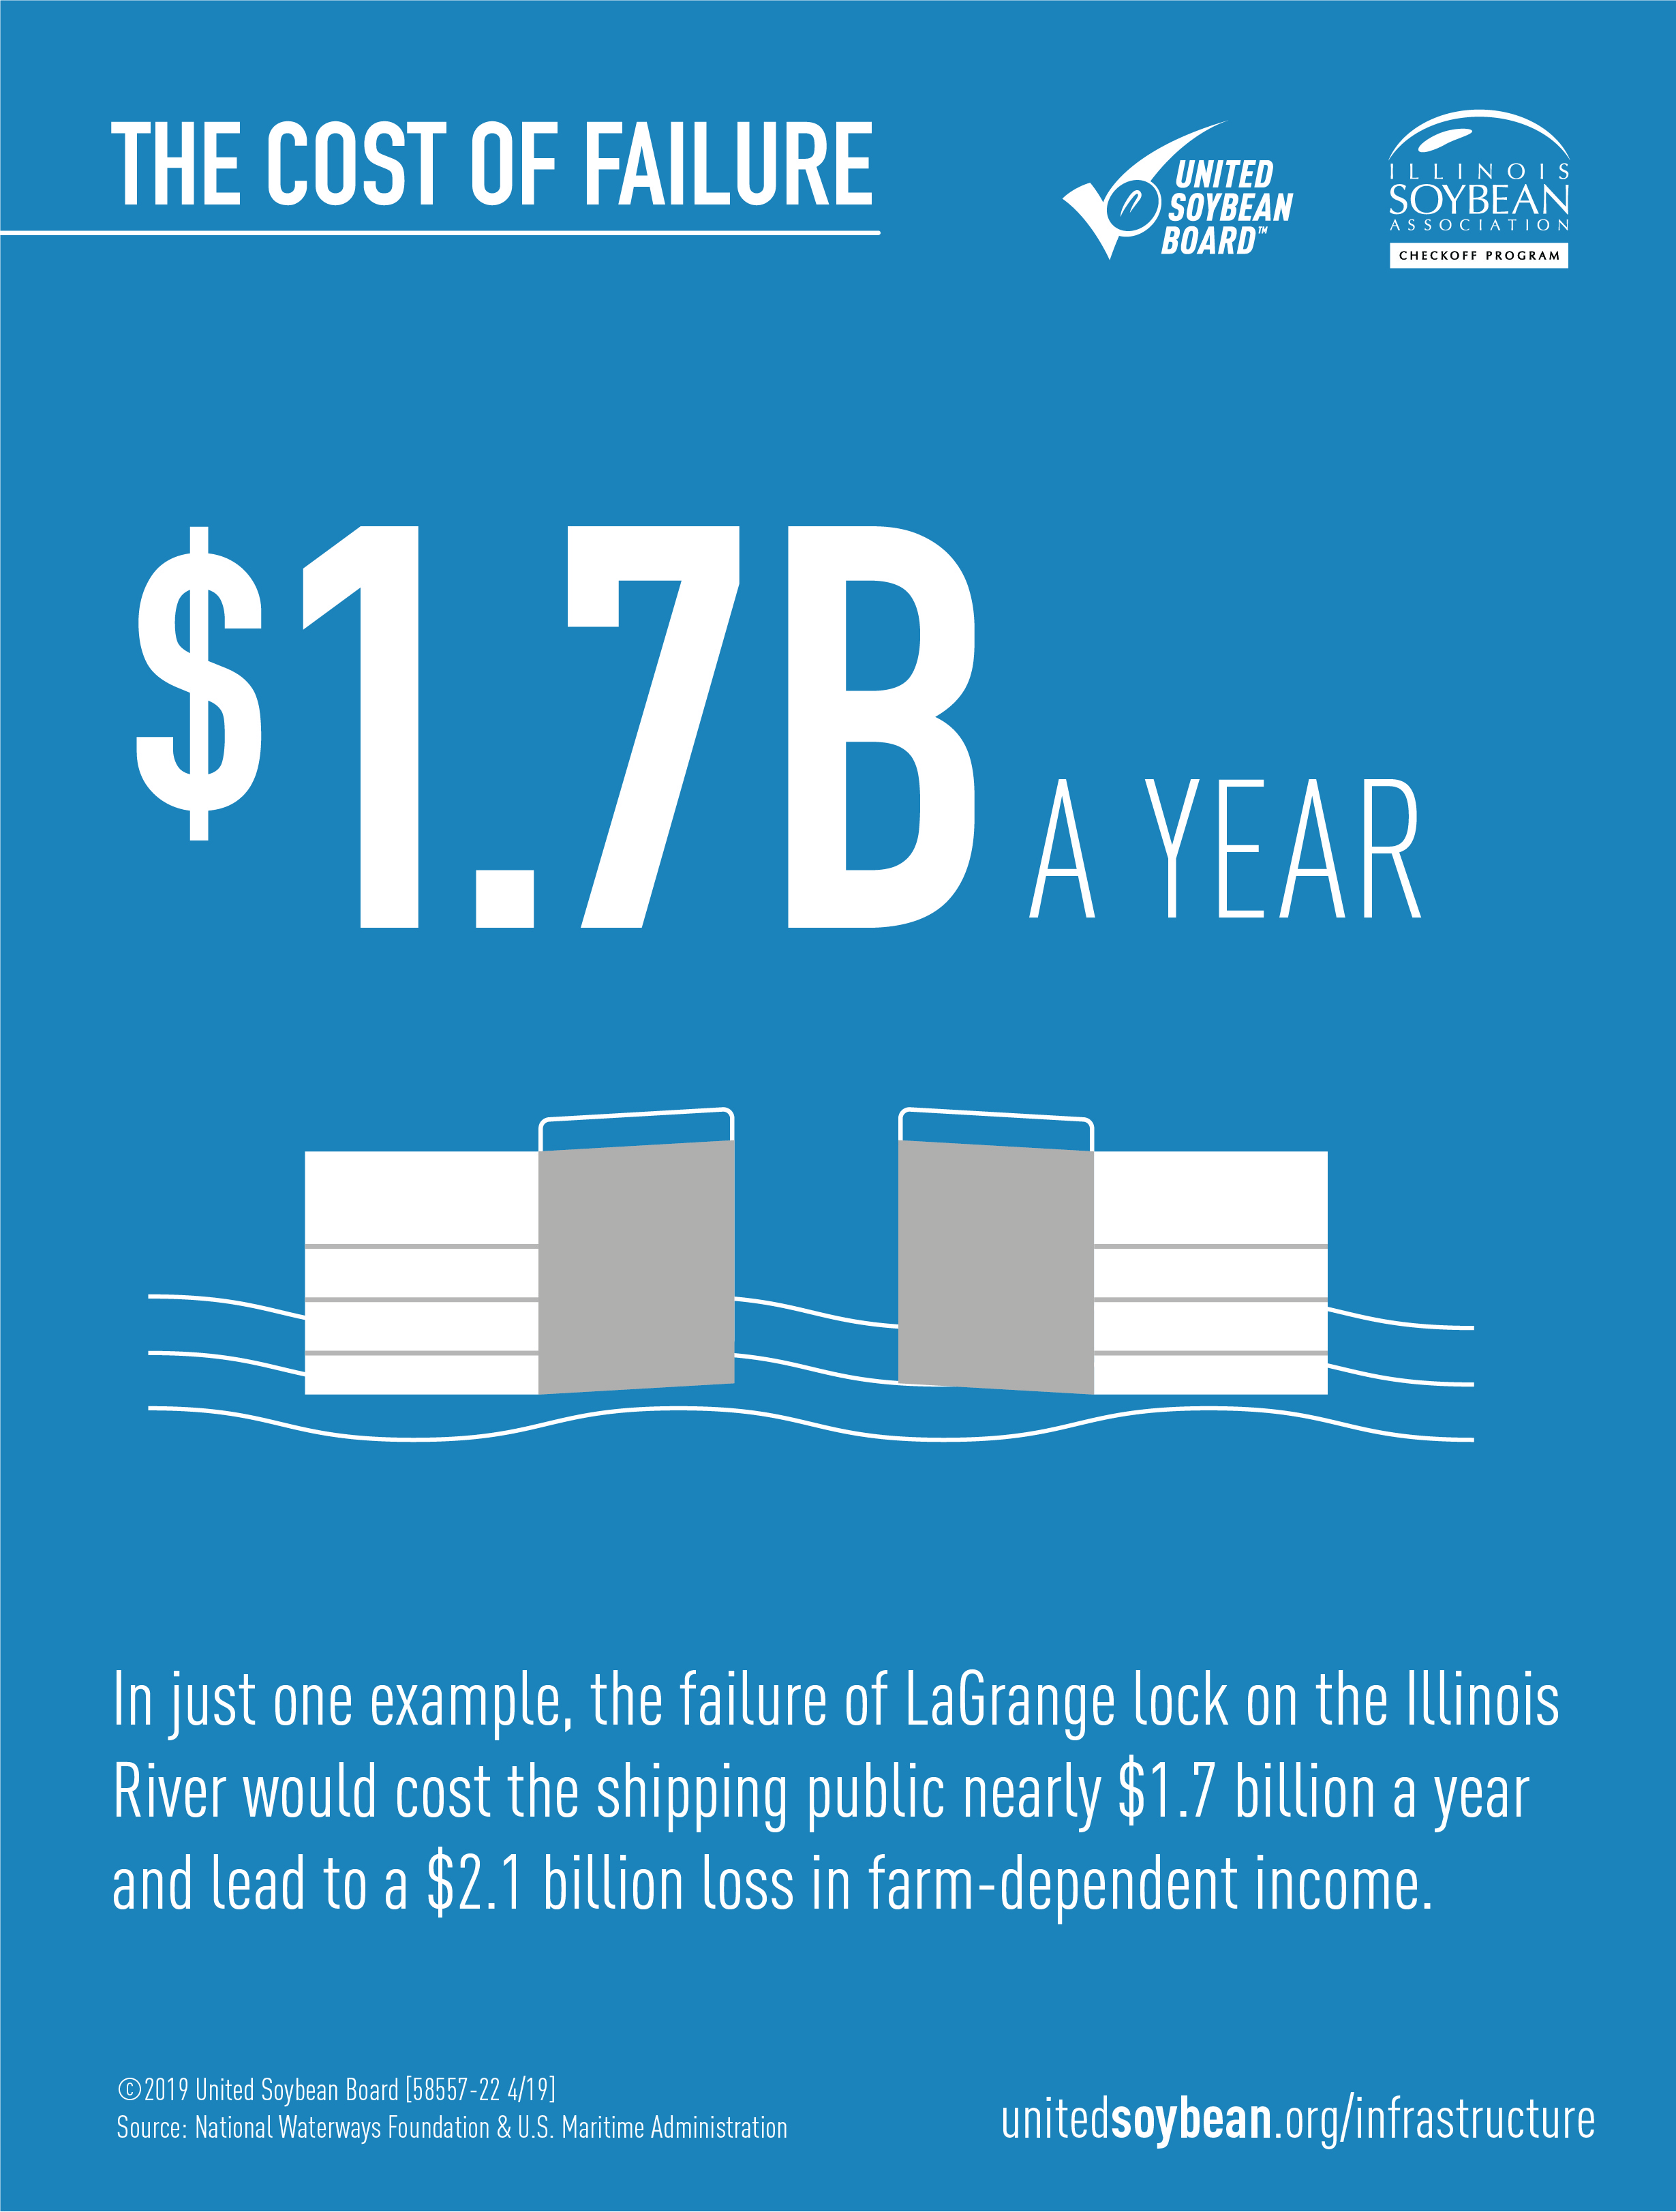 In just one example, the failure of LaGrange lock on the Illinois river would cost the shipping public nearly $1.7 billion a year and lead to a $2.1 billion loss in farm-dependent income.